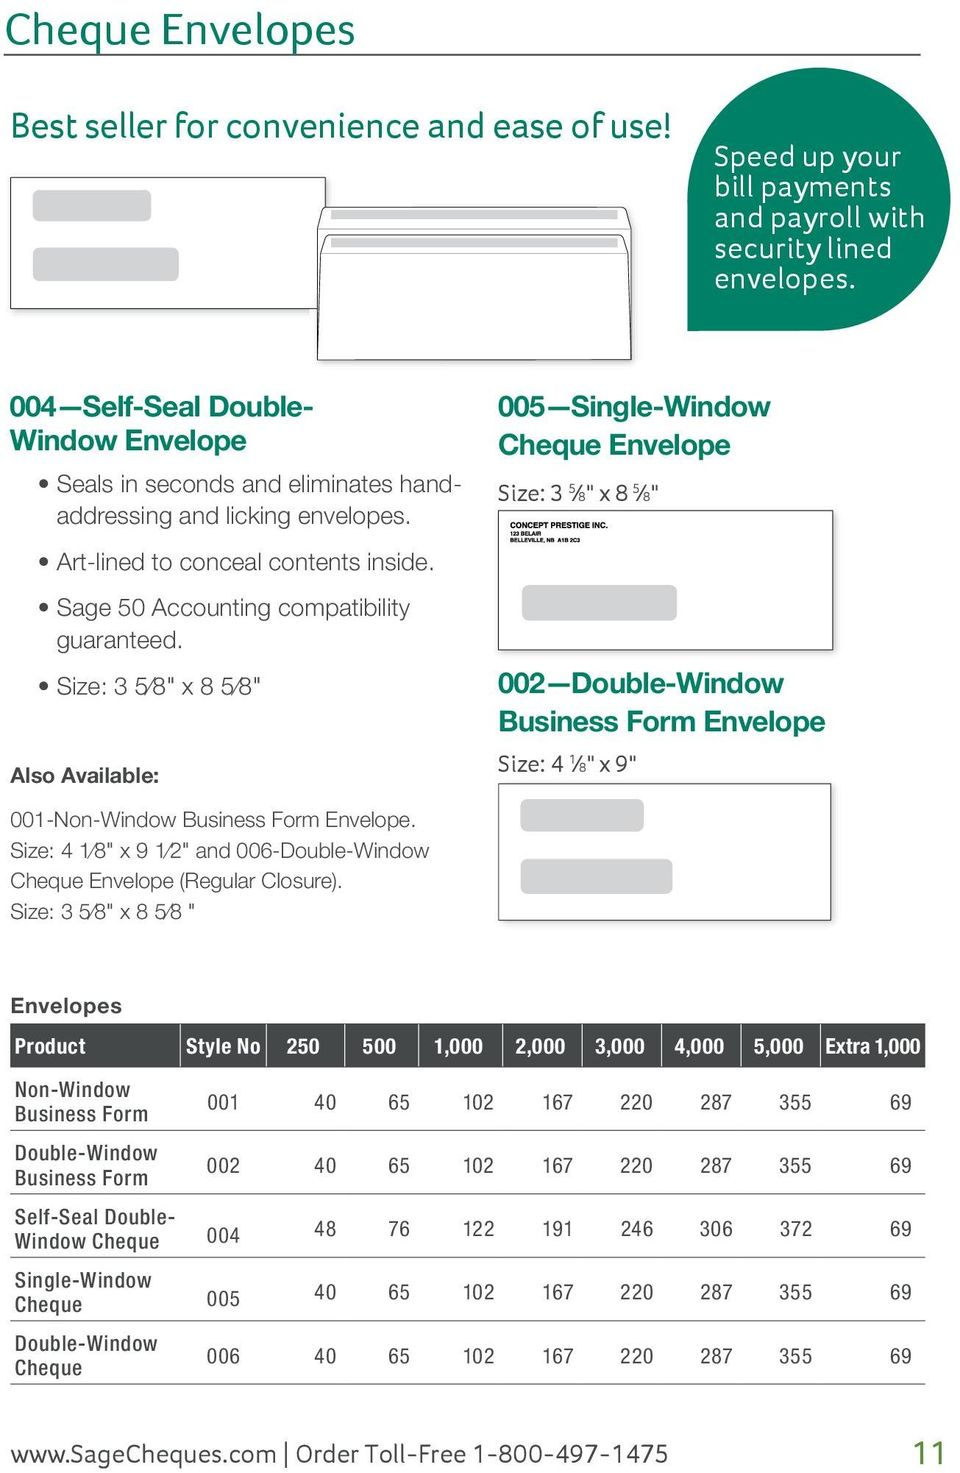 "Size: 3 5 8"" x 8 5 8"" Also Available: 005 Single-Window Cheque Envelope Size: 3 5 8"" x 8 5 8"" 002 Double-Window Business Form Envelope Size: 4 1 8"" x 9"" 001-Non-Window Business Form Envelope."